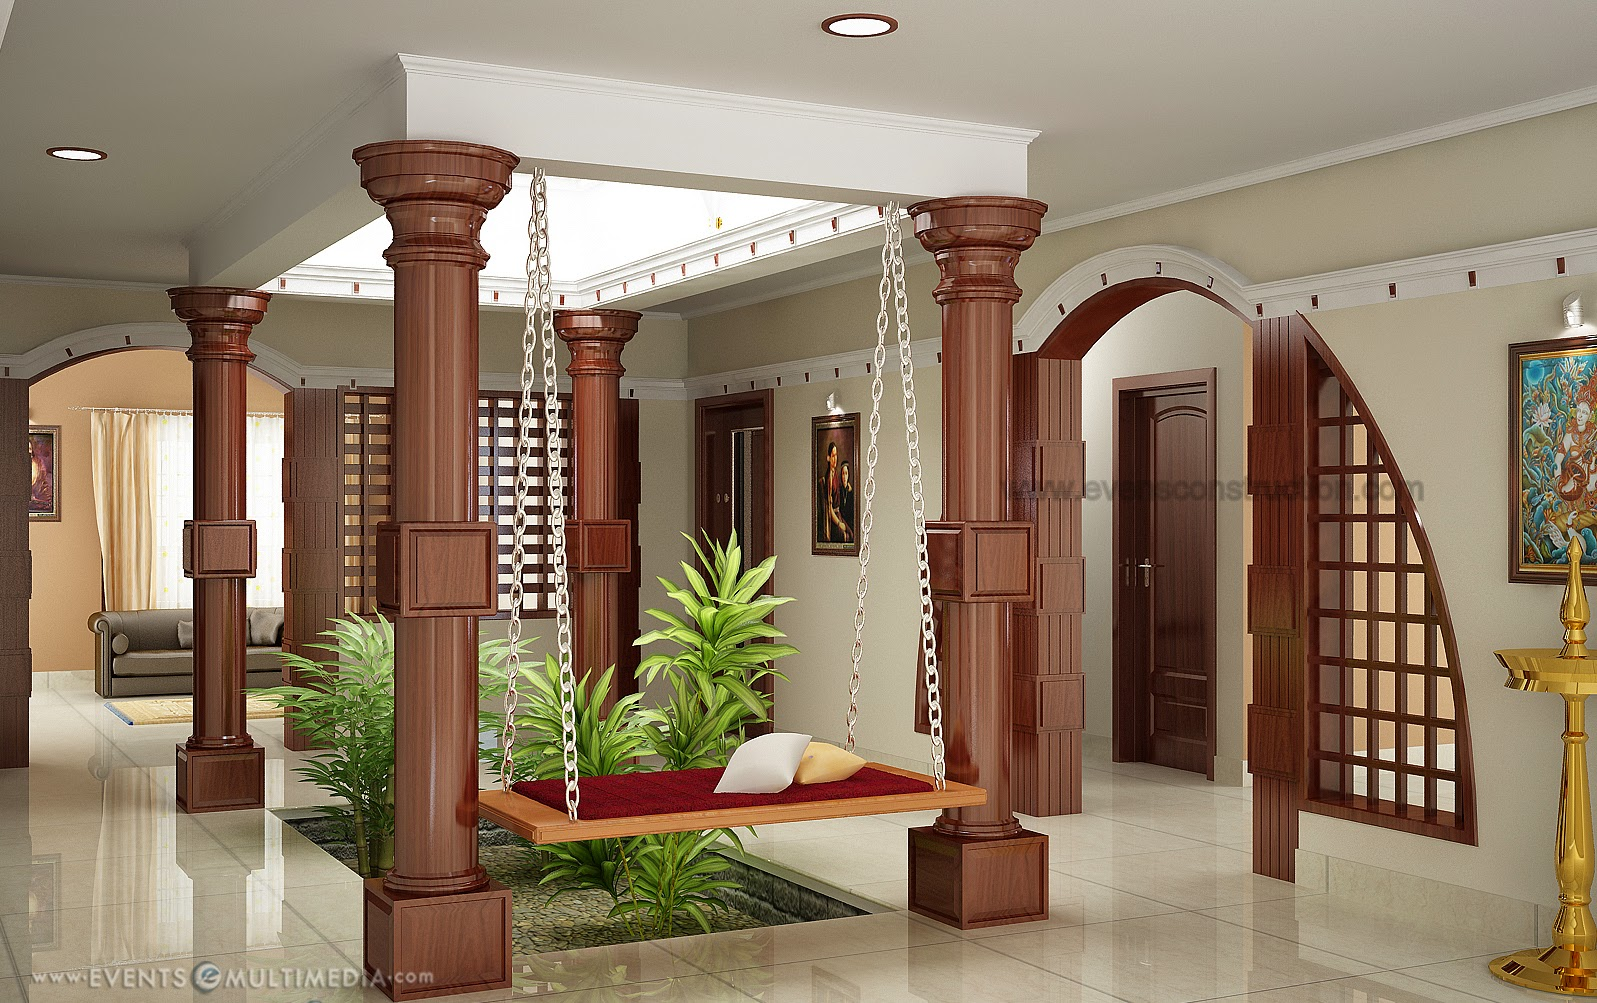 Courtyard for kerala house home Homes with inner courtyards